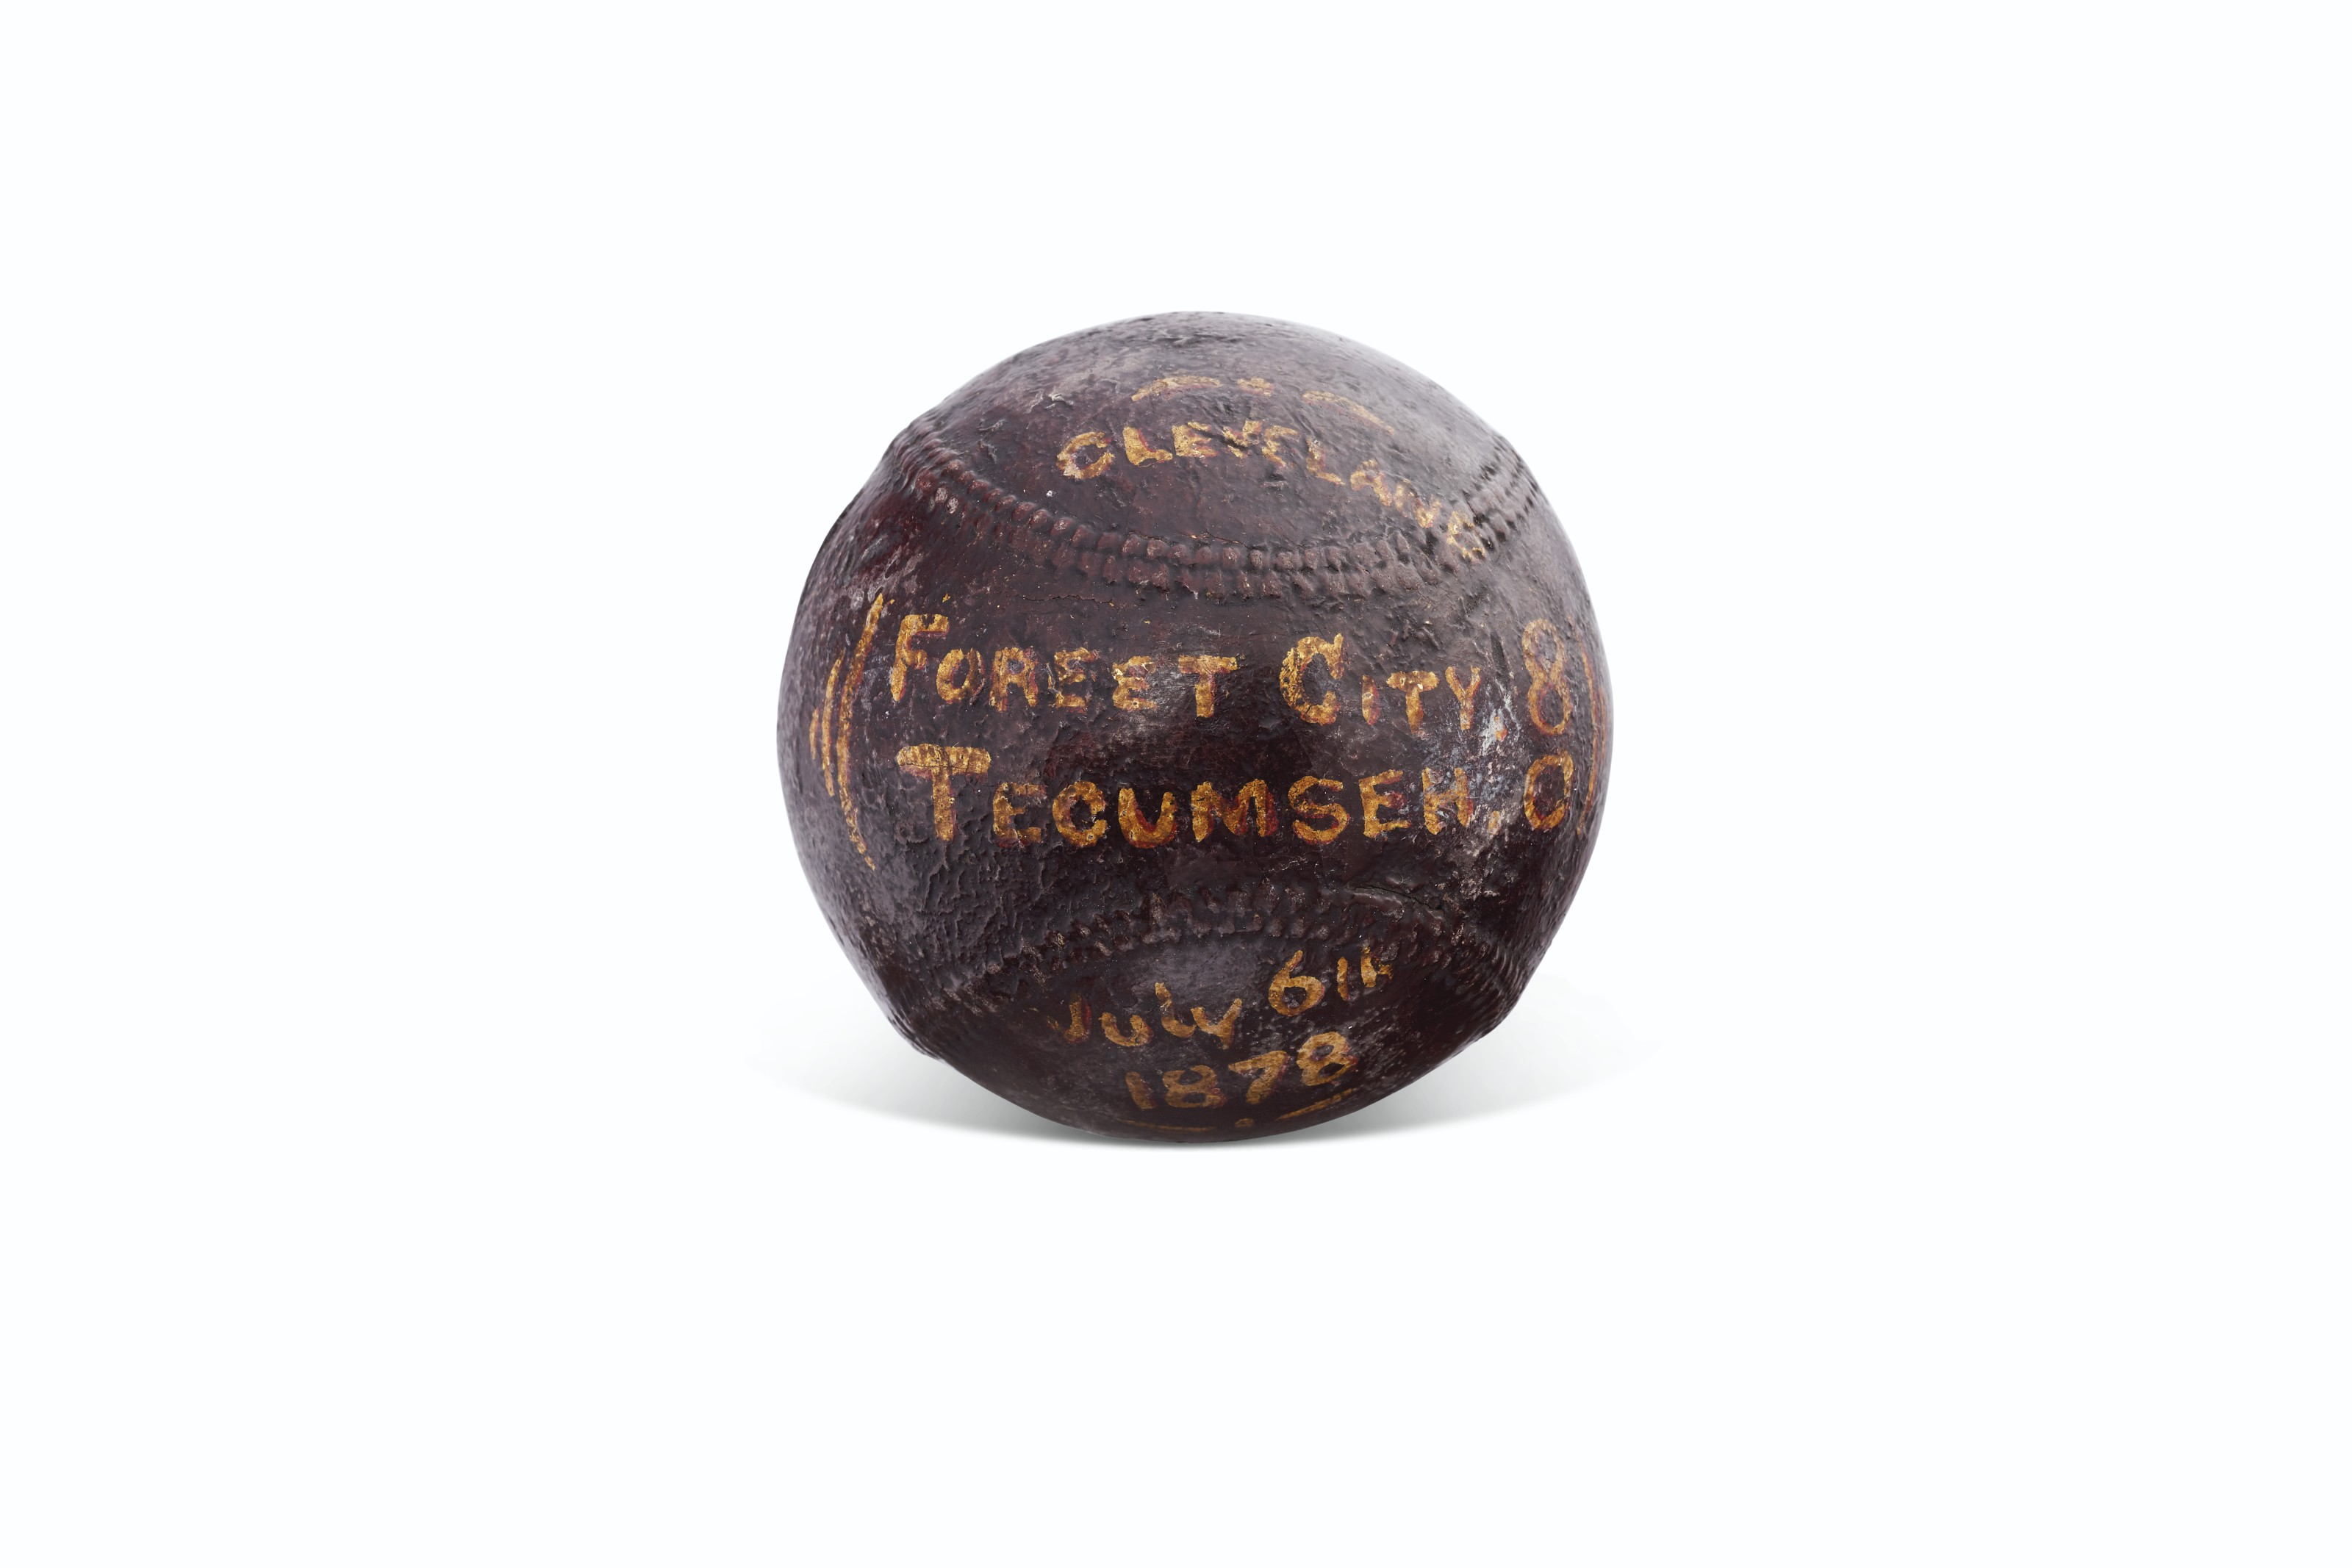 July 6, 1878 Cleveland Forest City vs. Tecumseh BBC Trophy Baseball